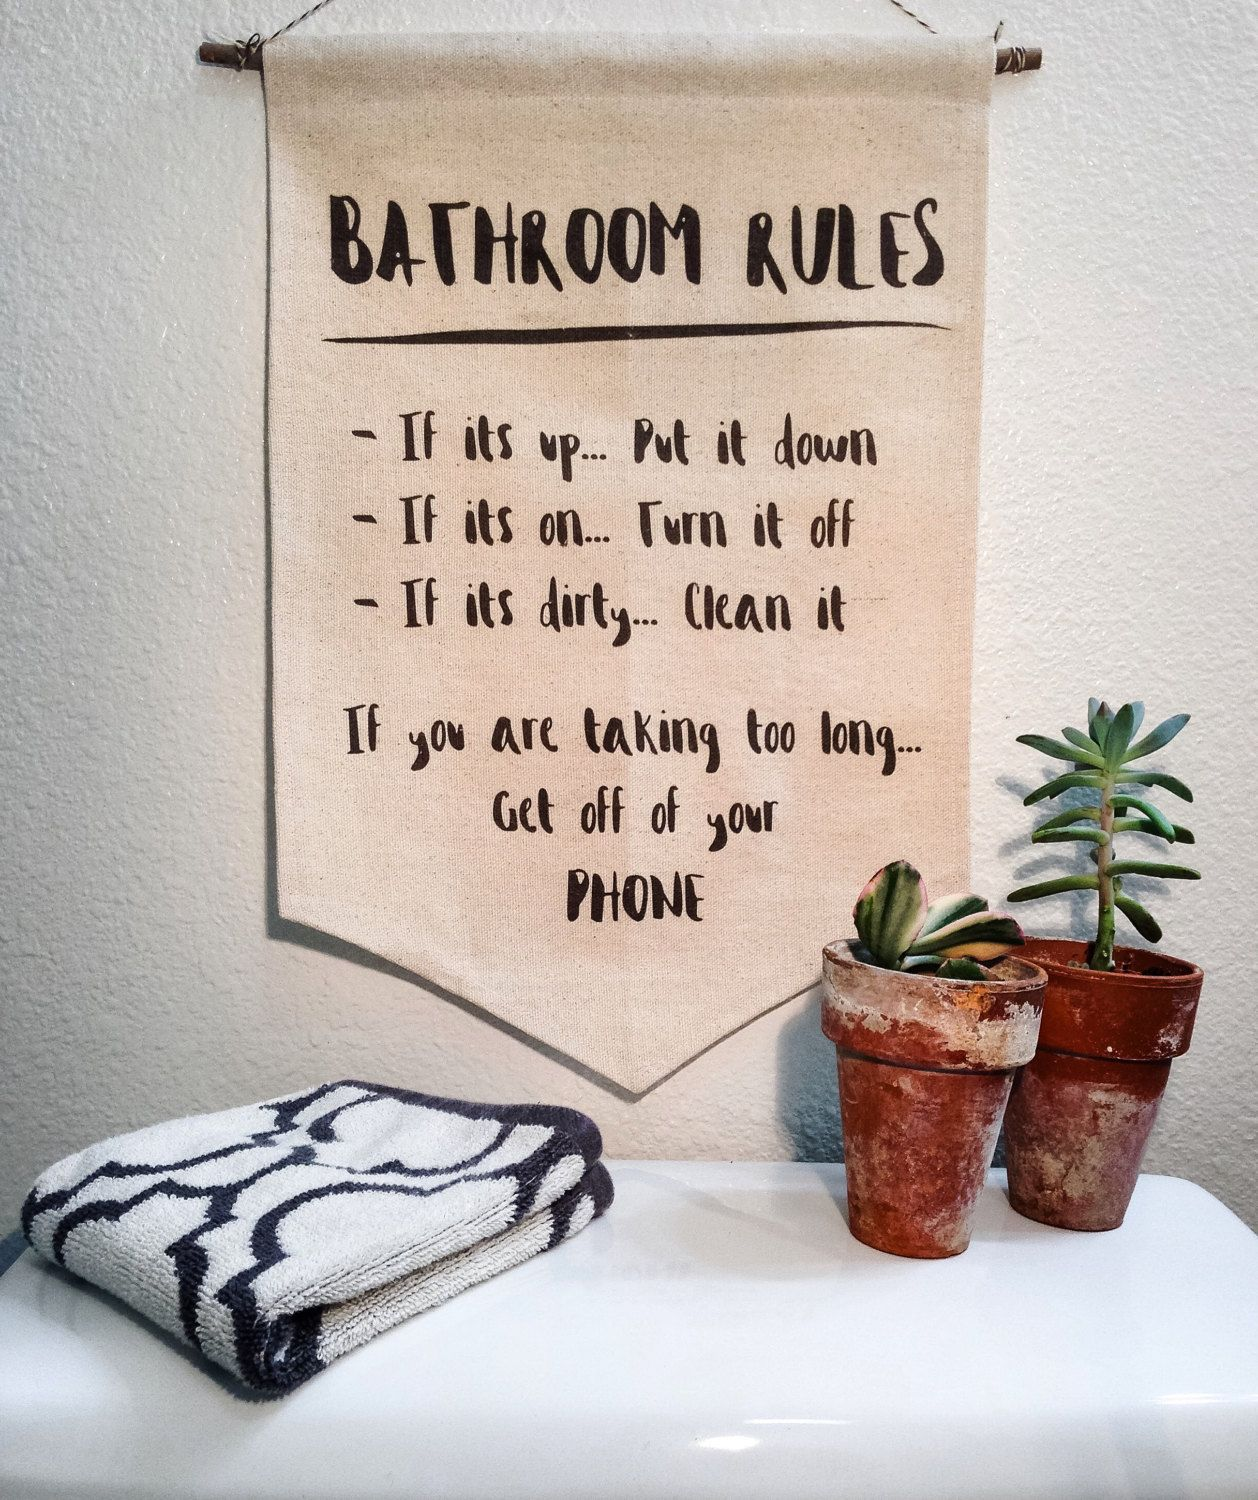 Bathroom wall decor quotes - Handmade Bathroom Rules Canvas Wall Banner Bathroom Wall Decor Bathroom Quote Wall Decor